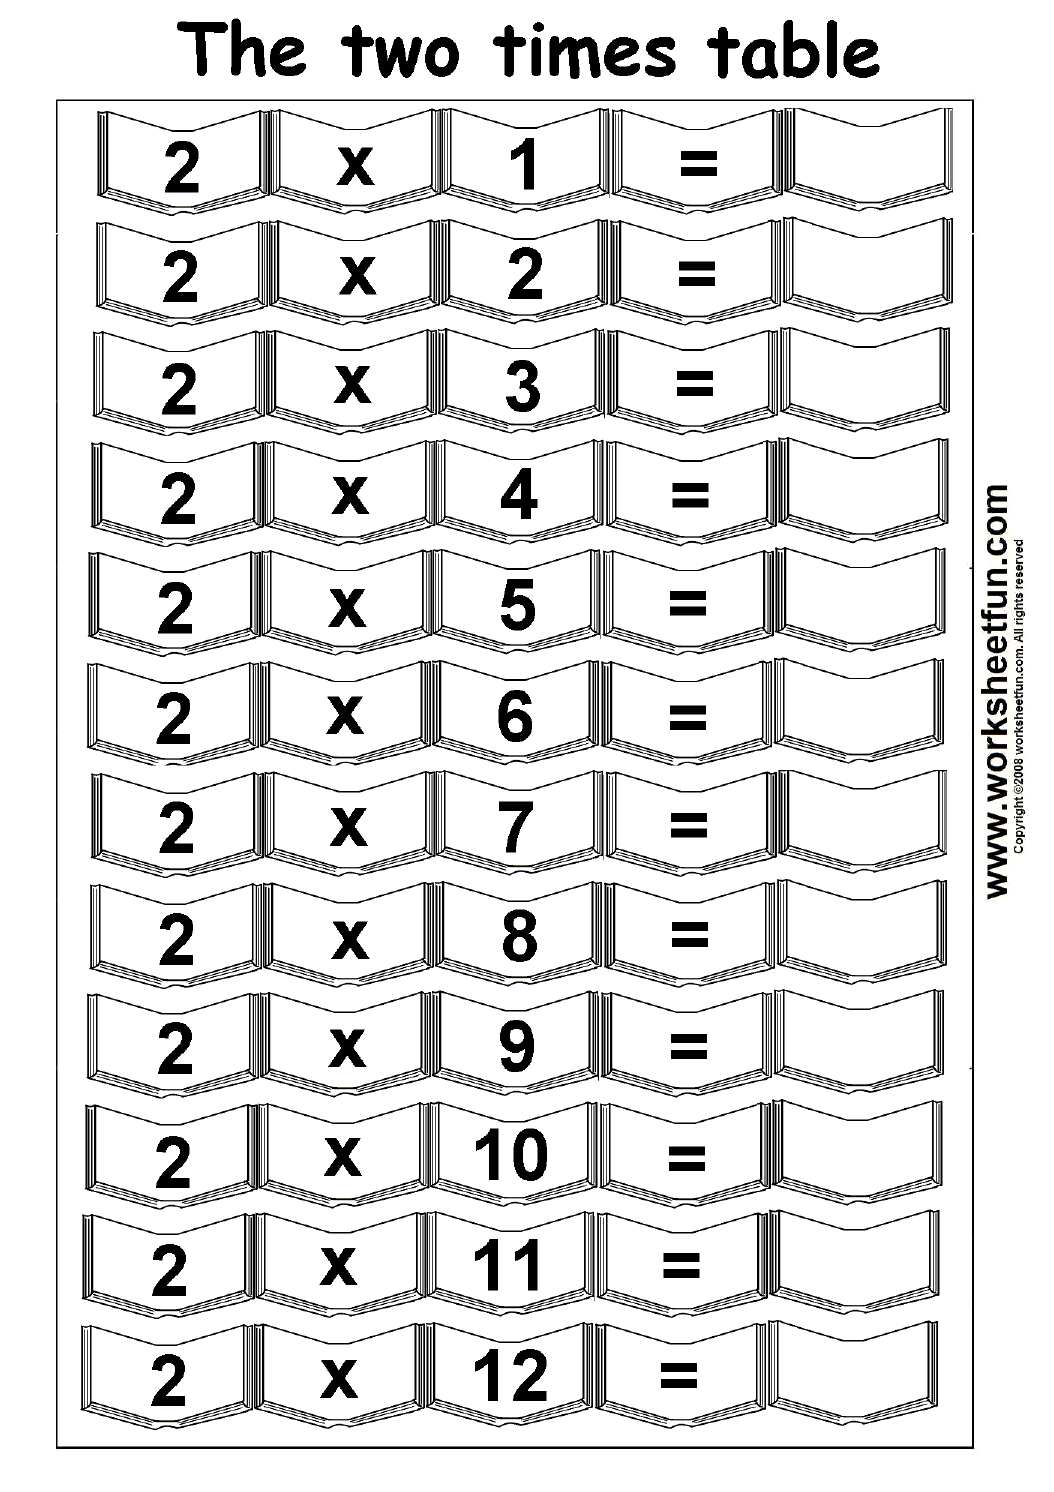 Worksheets Maths Tables 2 To 3 times table 3 free printable worksheets worksheetfun multiplication tables 2 4 5 four